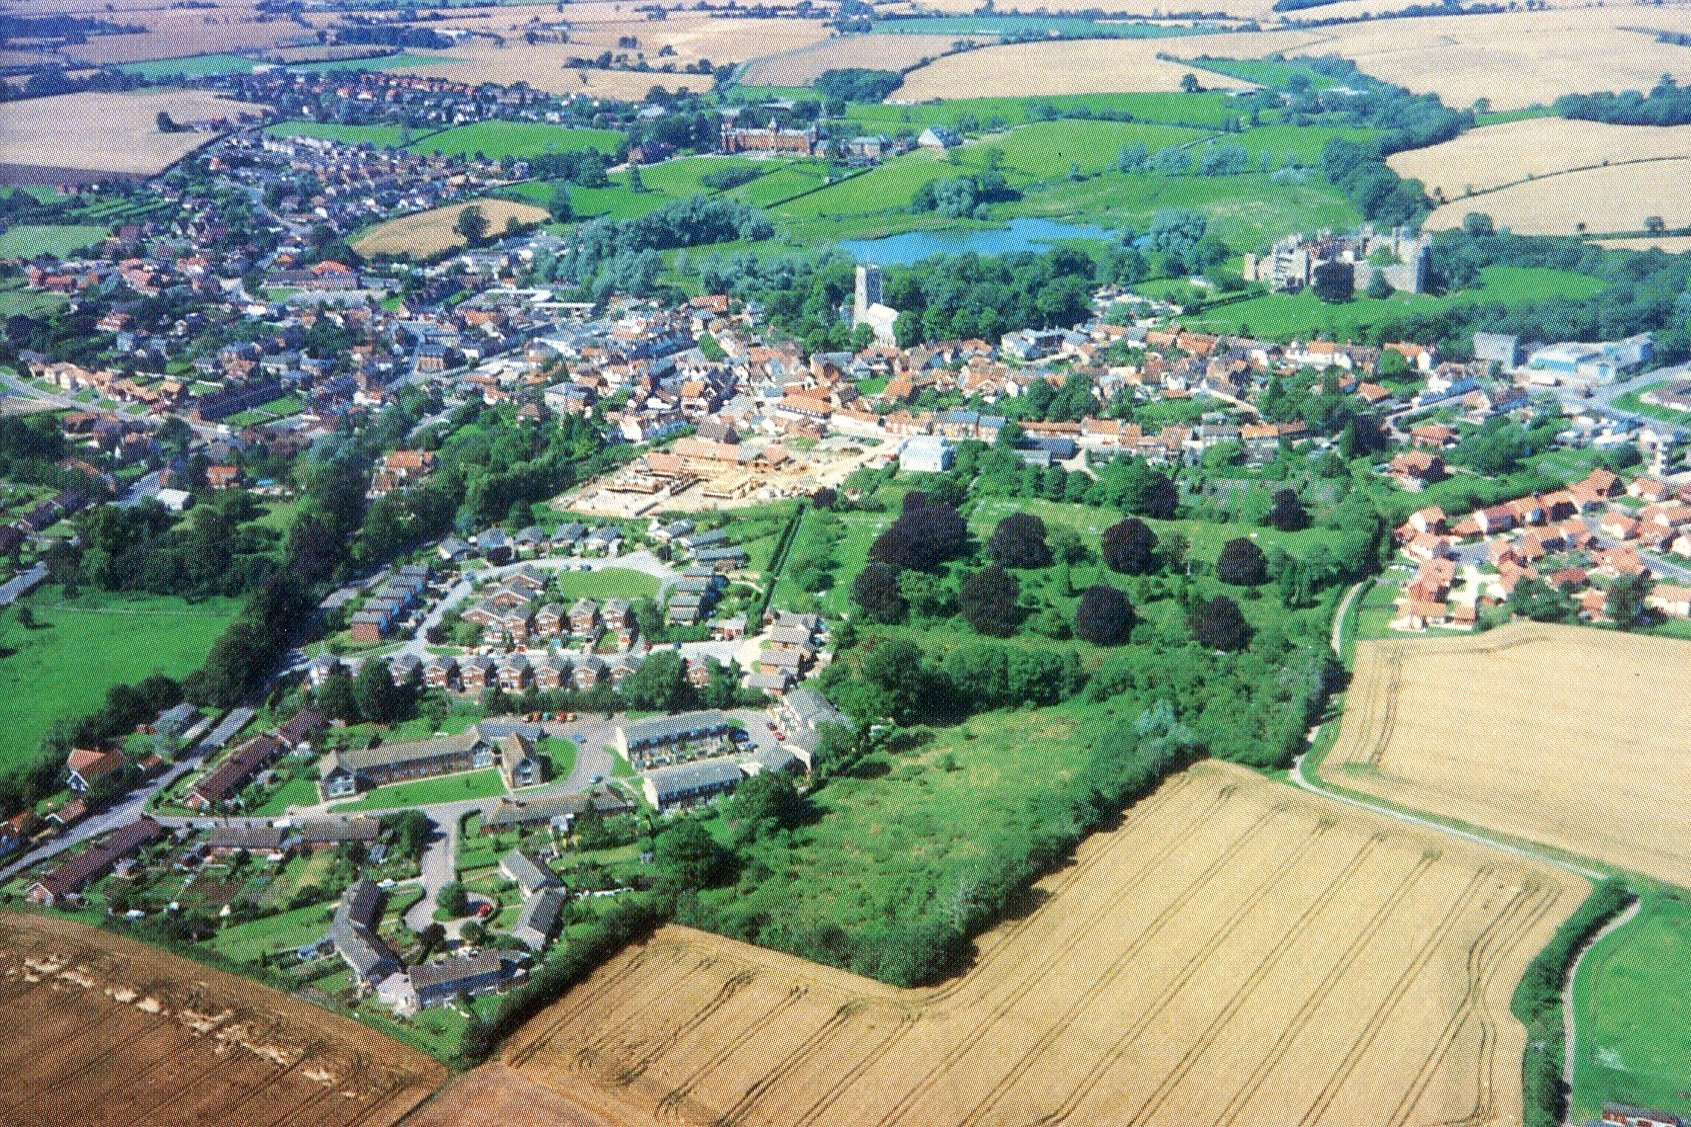 Aerial view of Framlingham